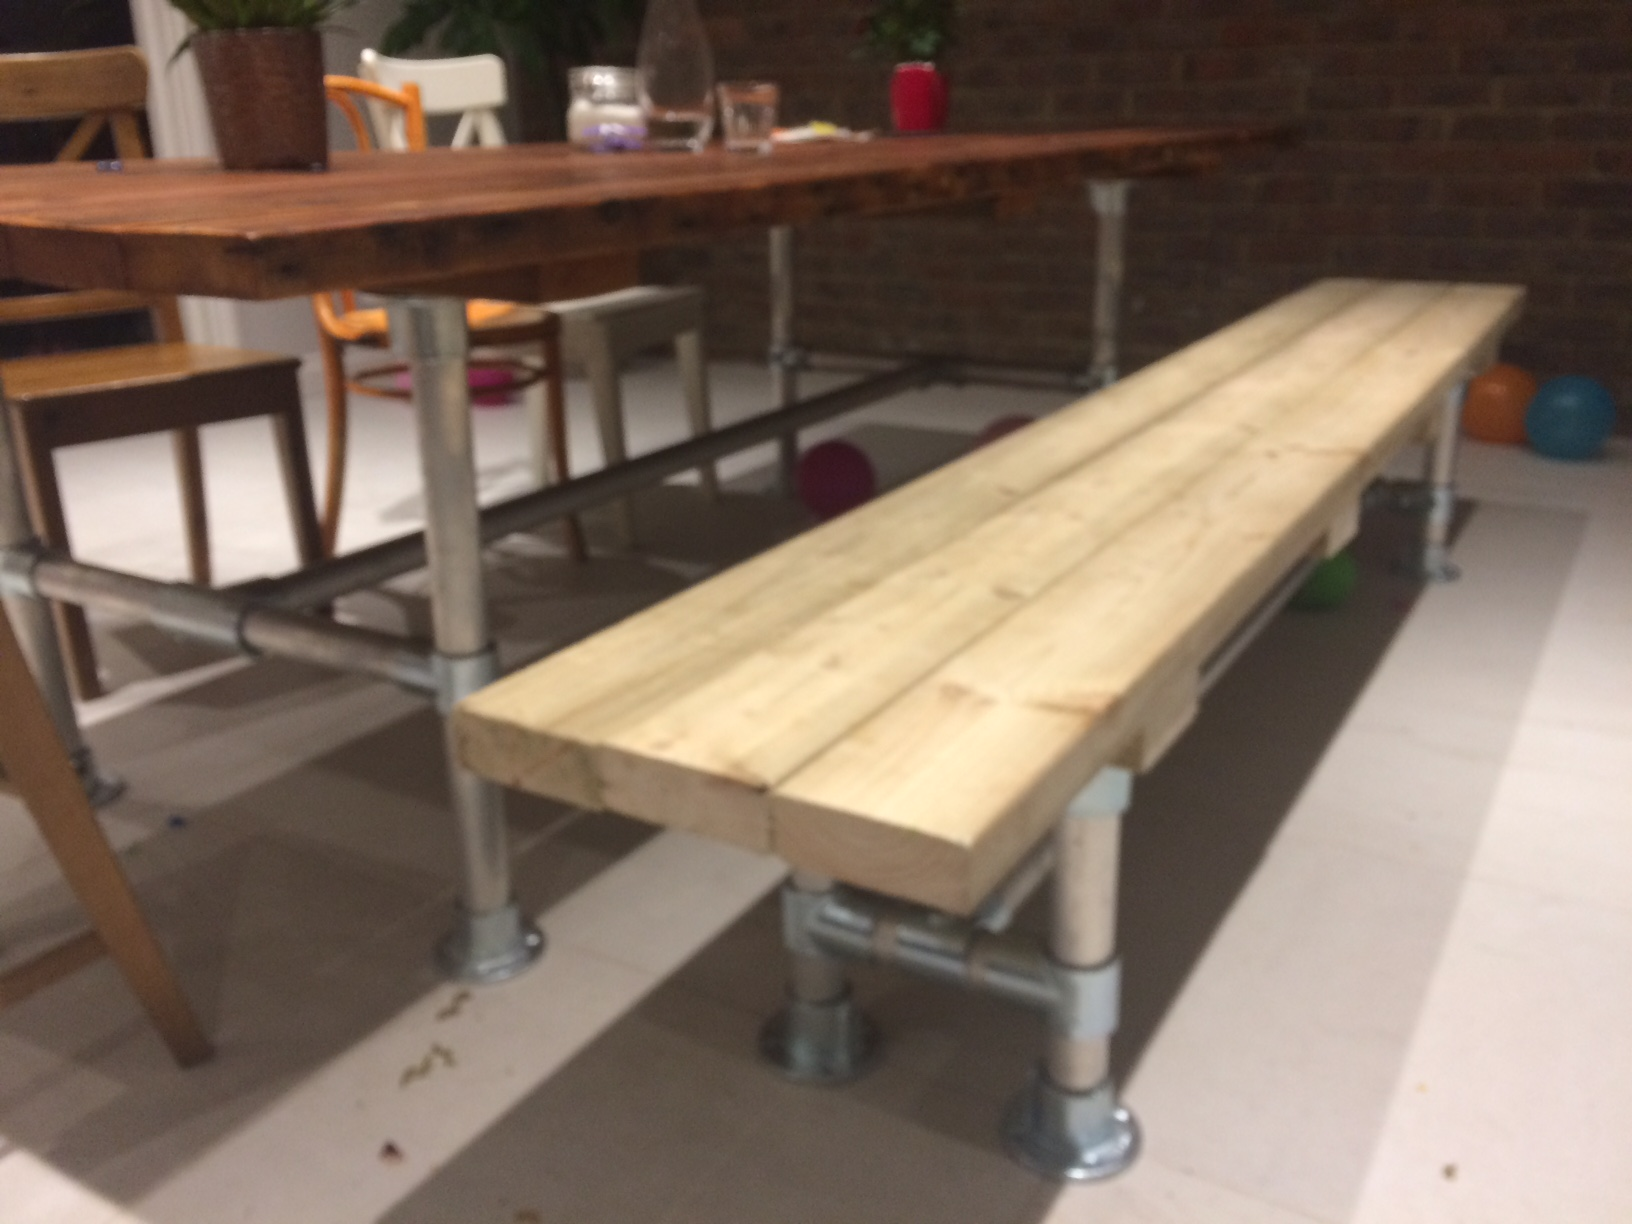 bench and table built